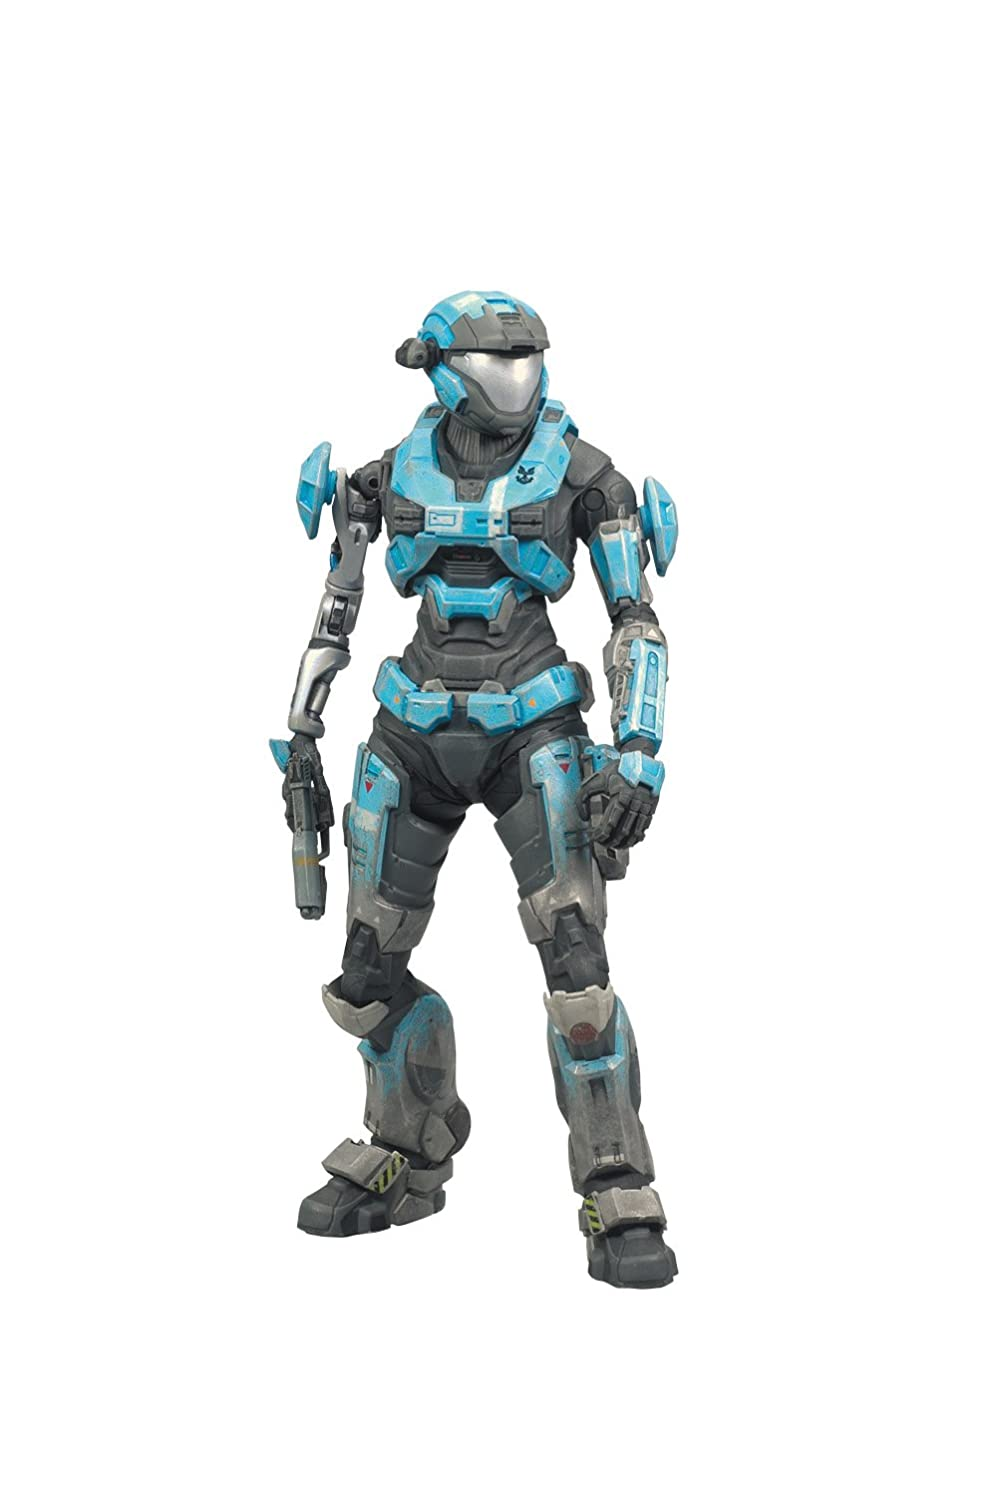 Halo Reach Series 2 Action Figure - Kat [IMPORT] [IMPORT] [IMPORT] 8db50f